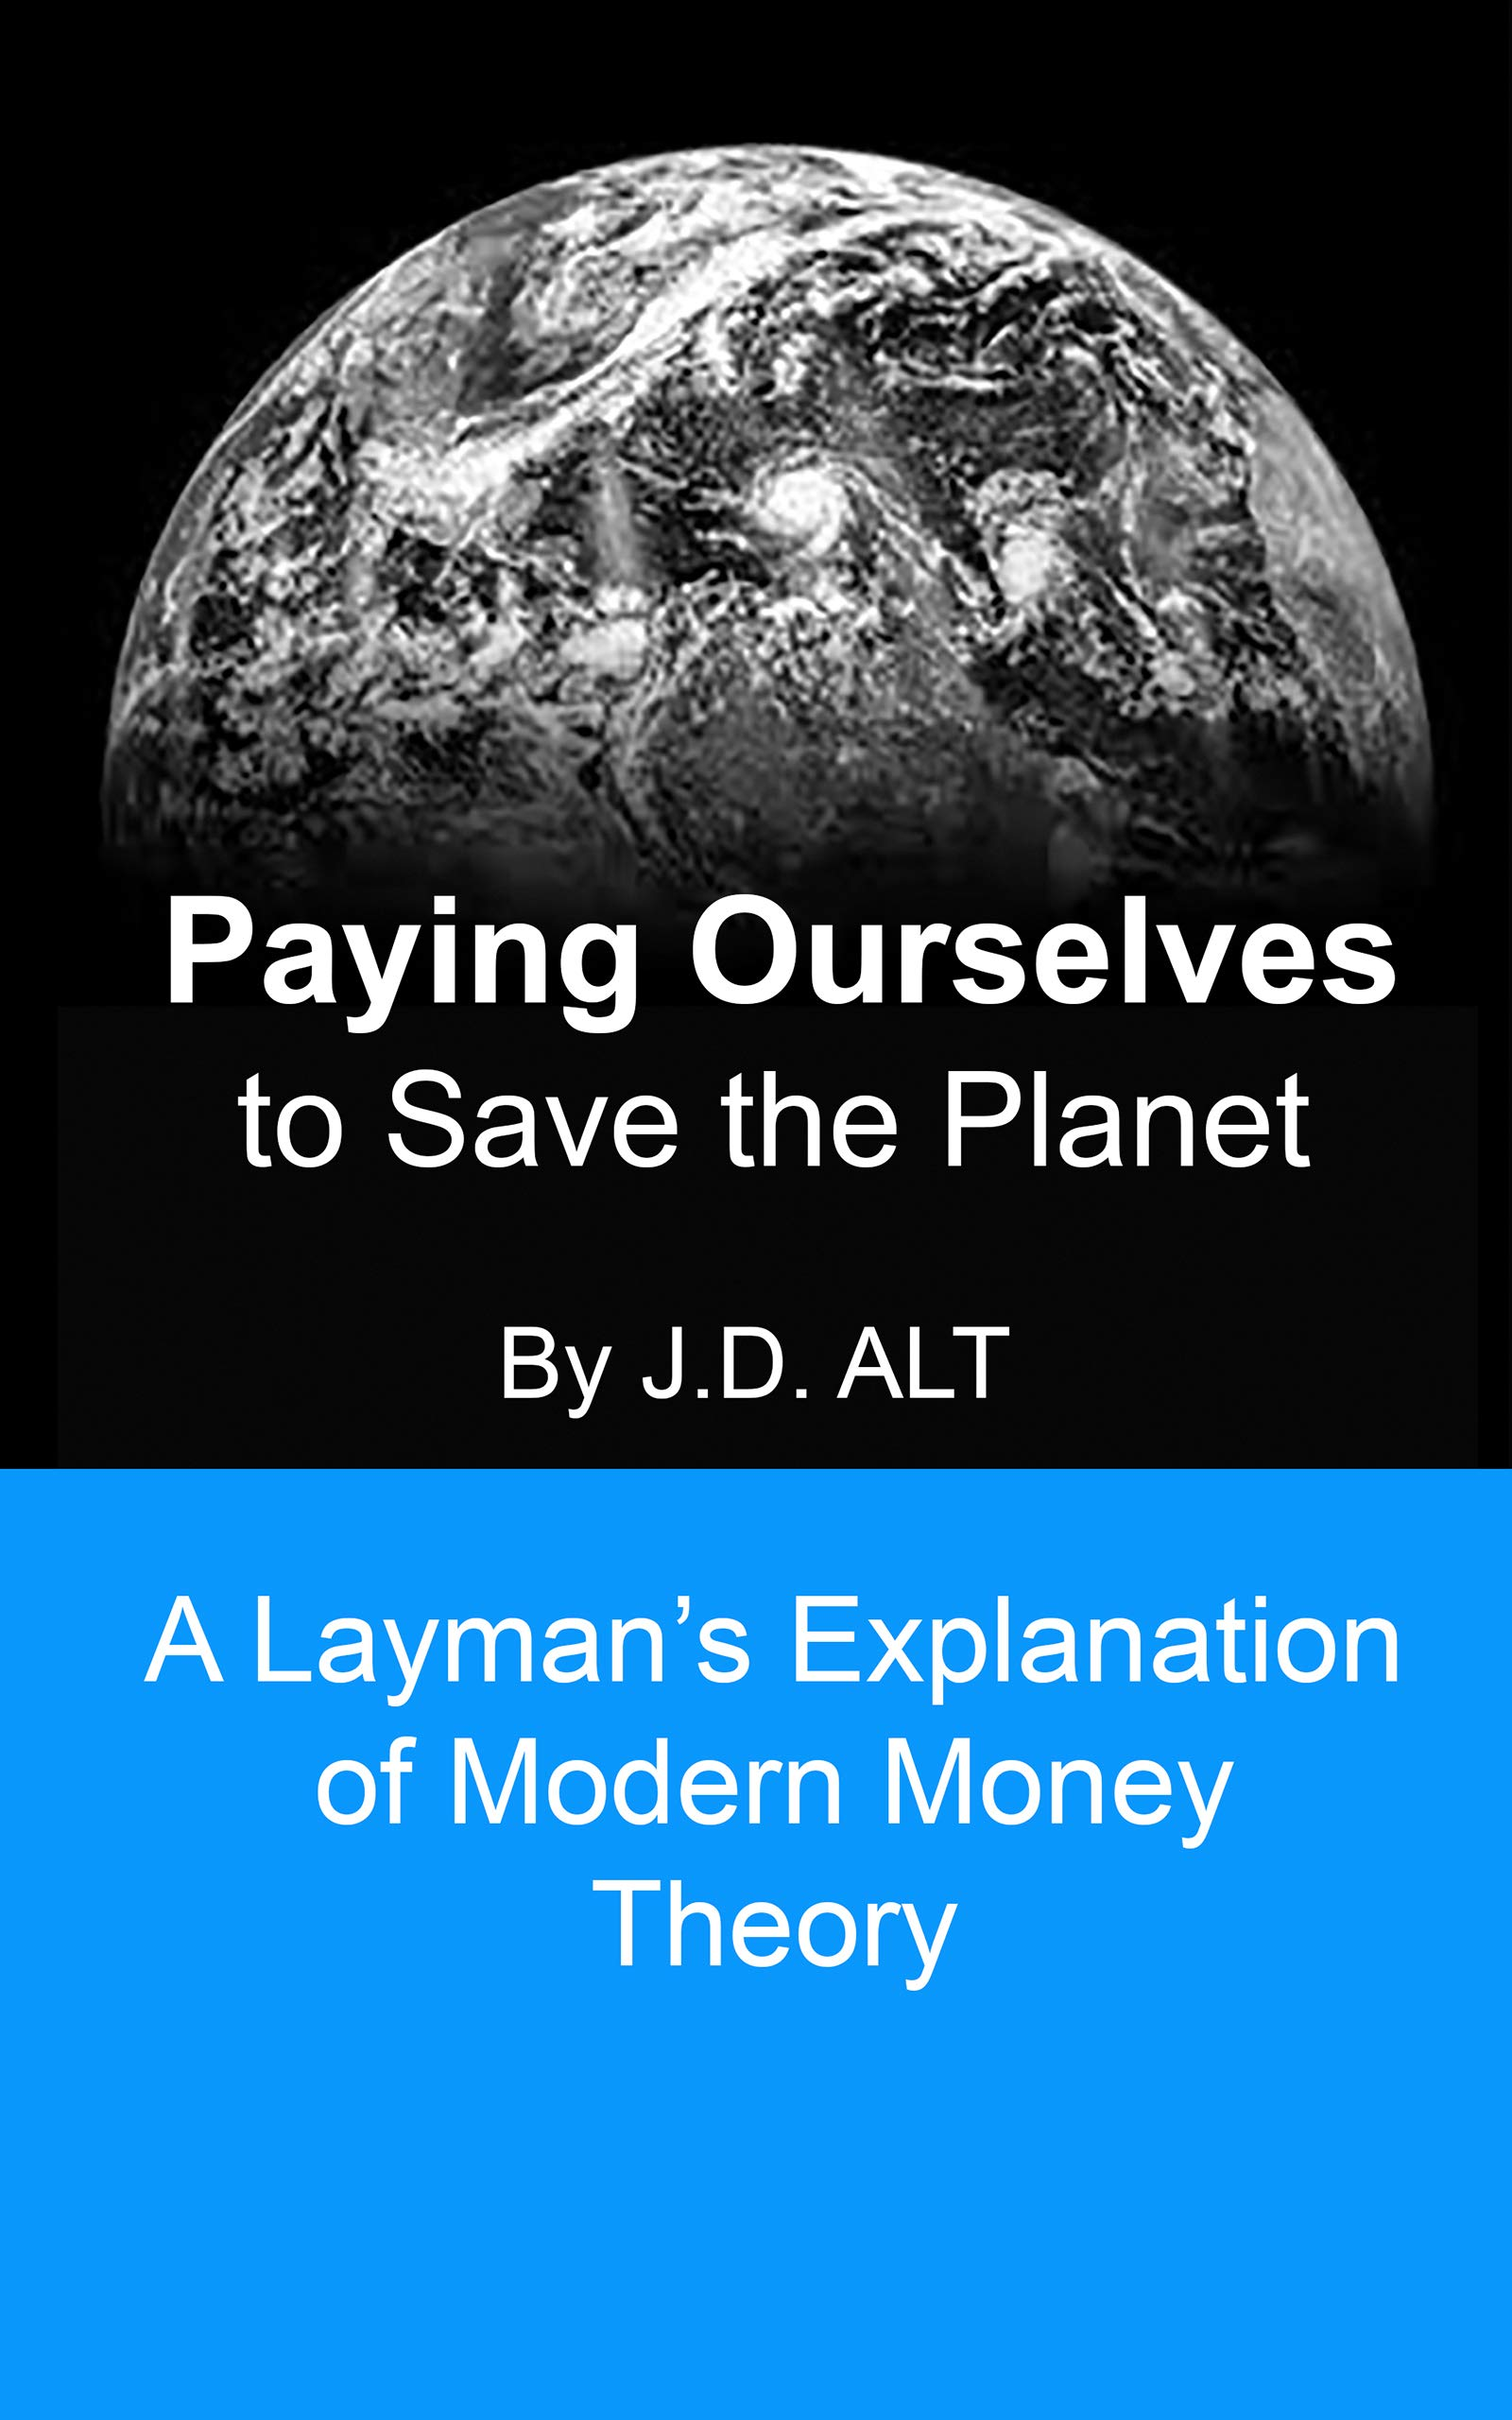 PAYING OURSELVES TO SAVE THE PLANET: A Layman's Explanation of Modern Money Theory